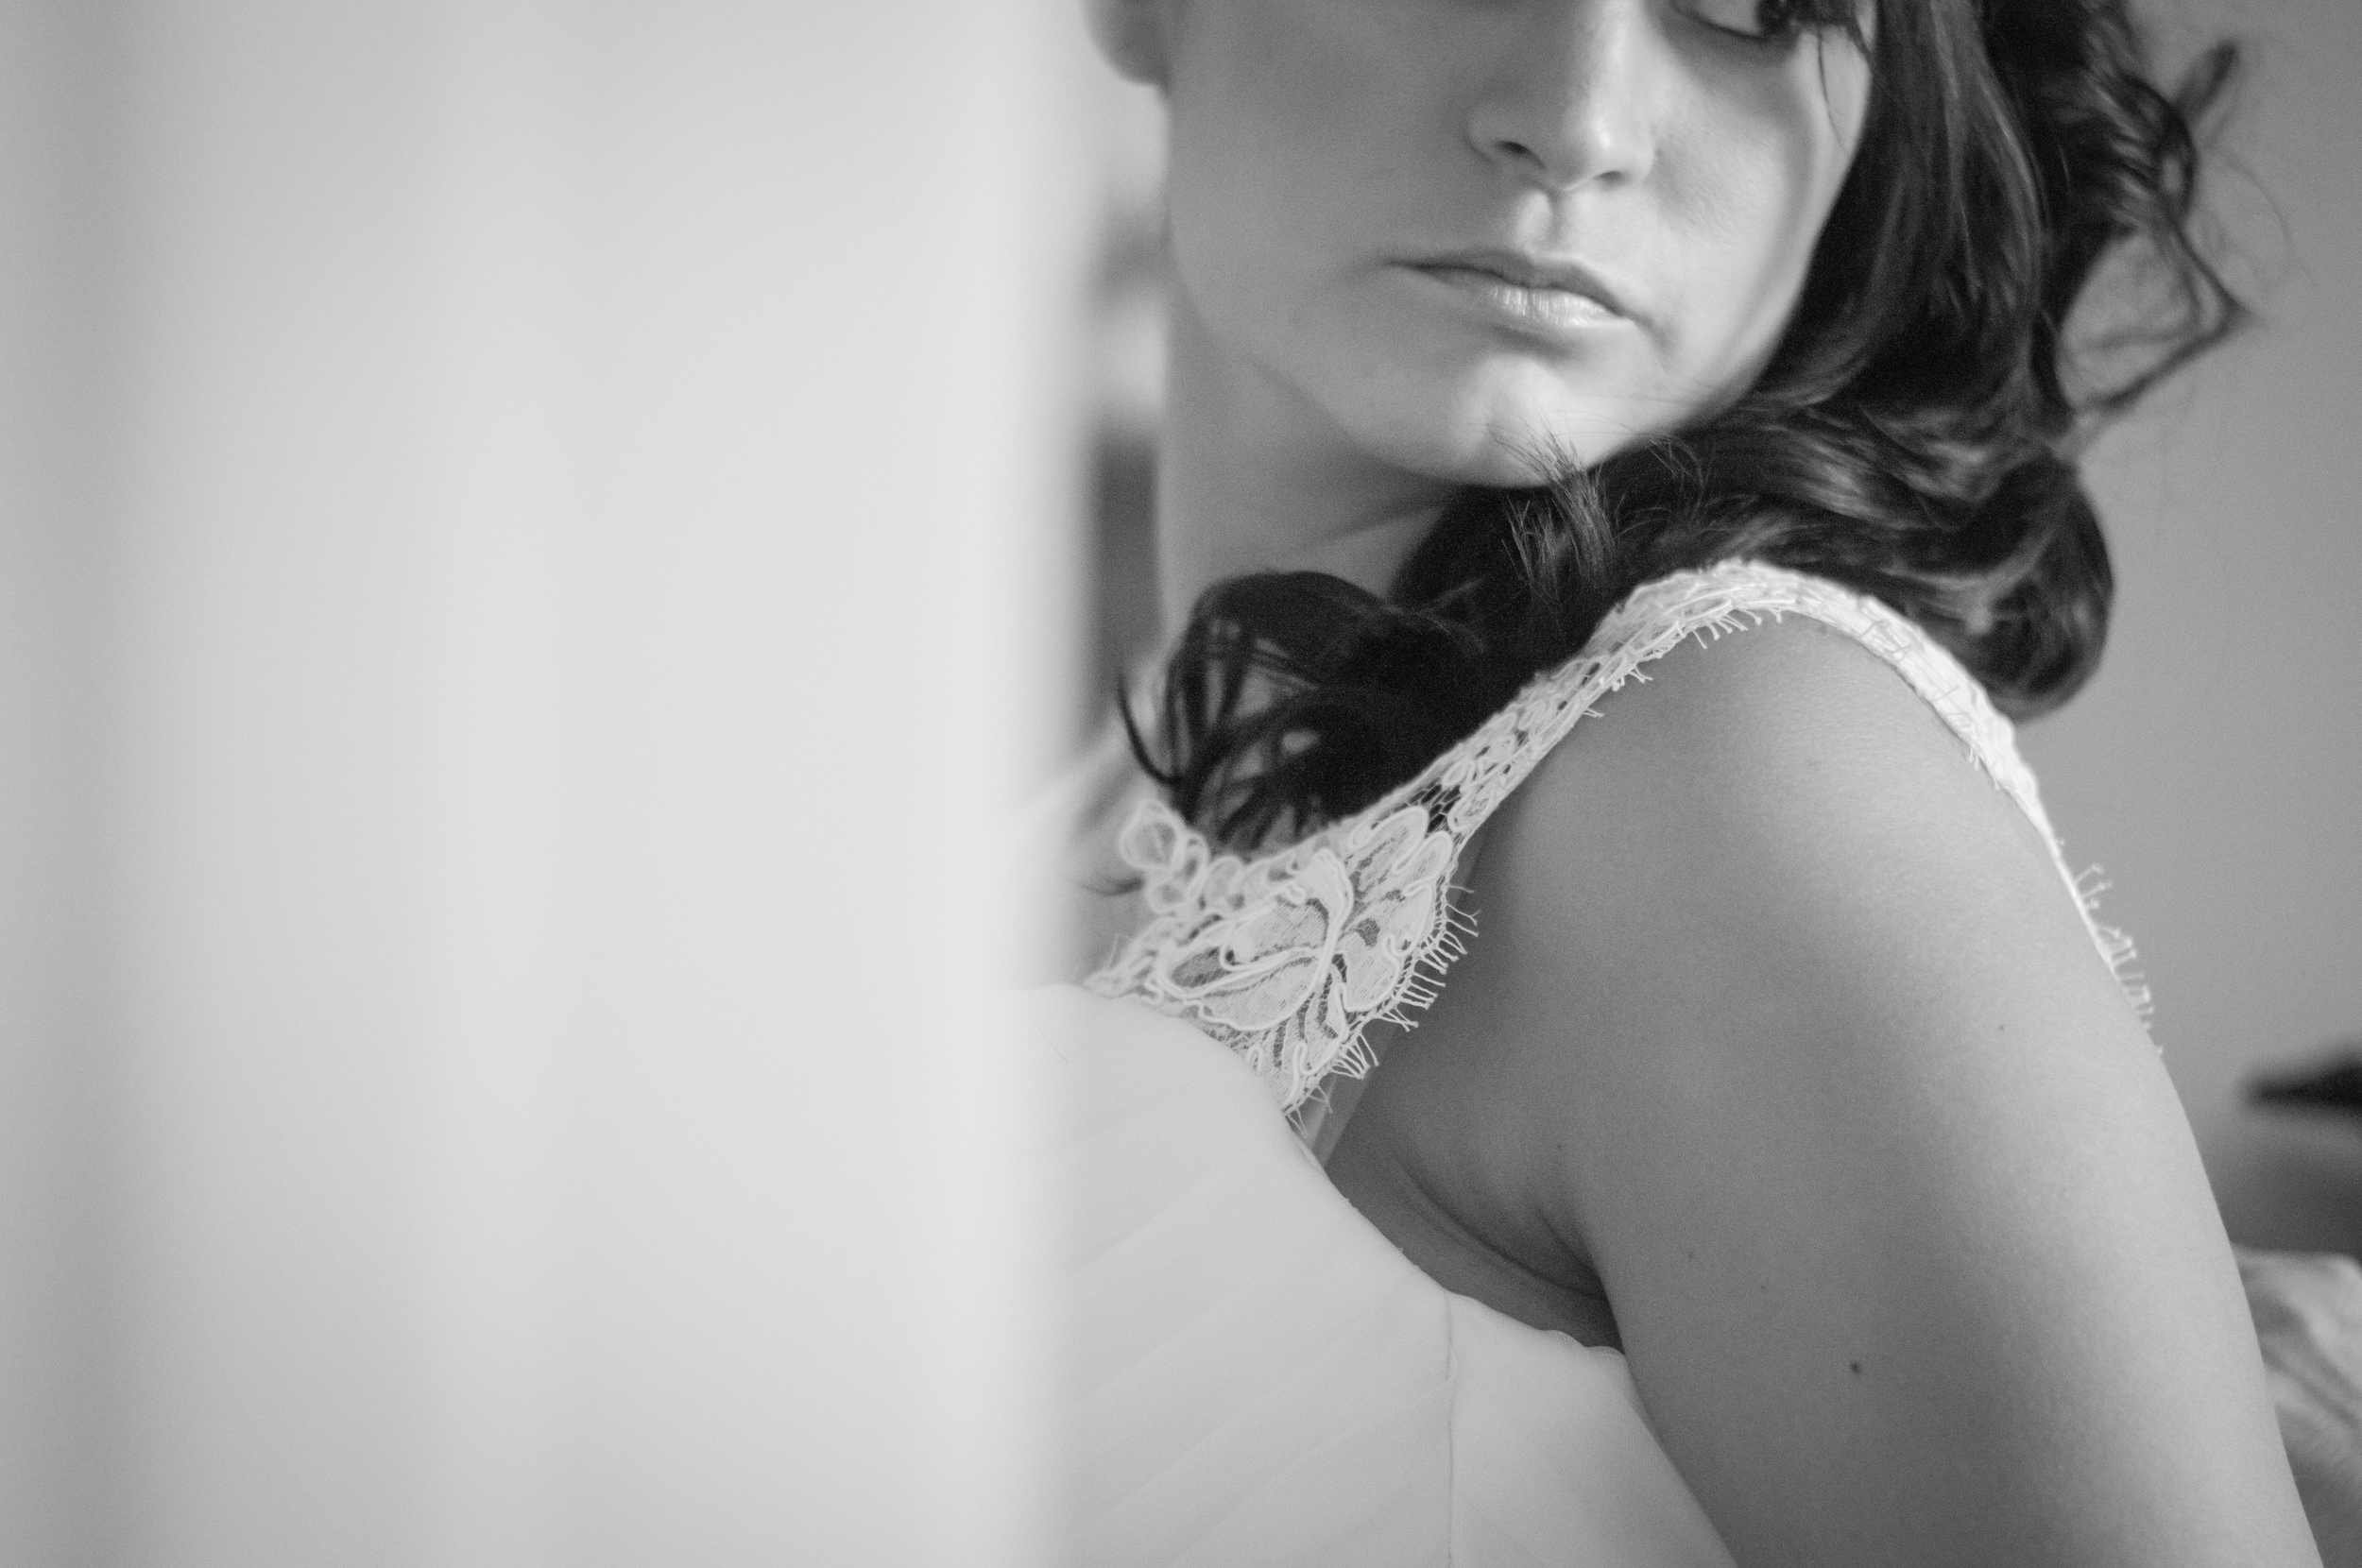 meredithdonnellyphotography-Williams Wedding 2014-101.jpg